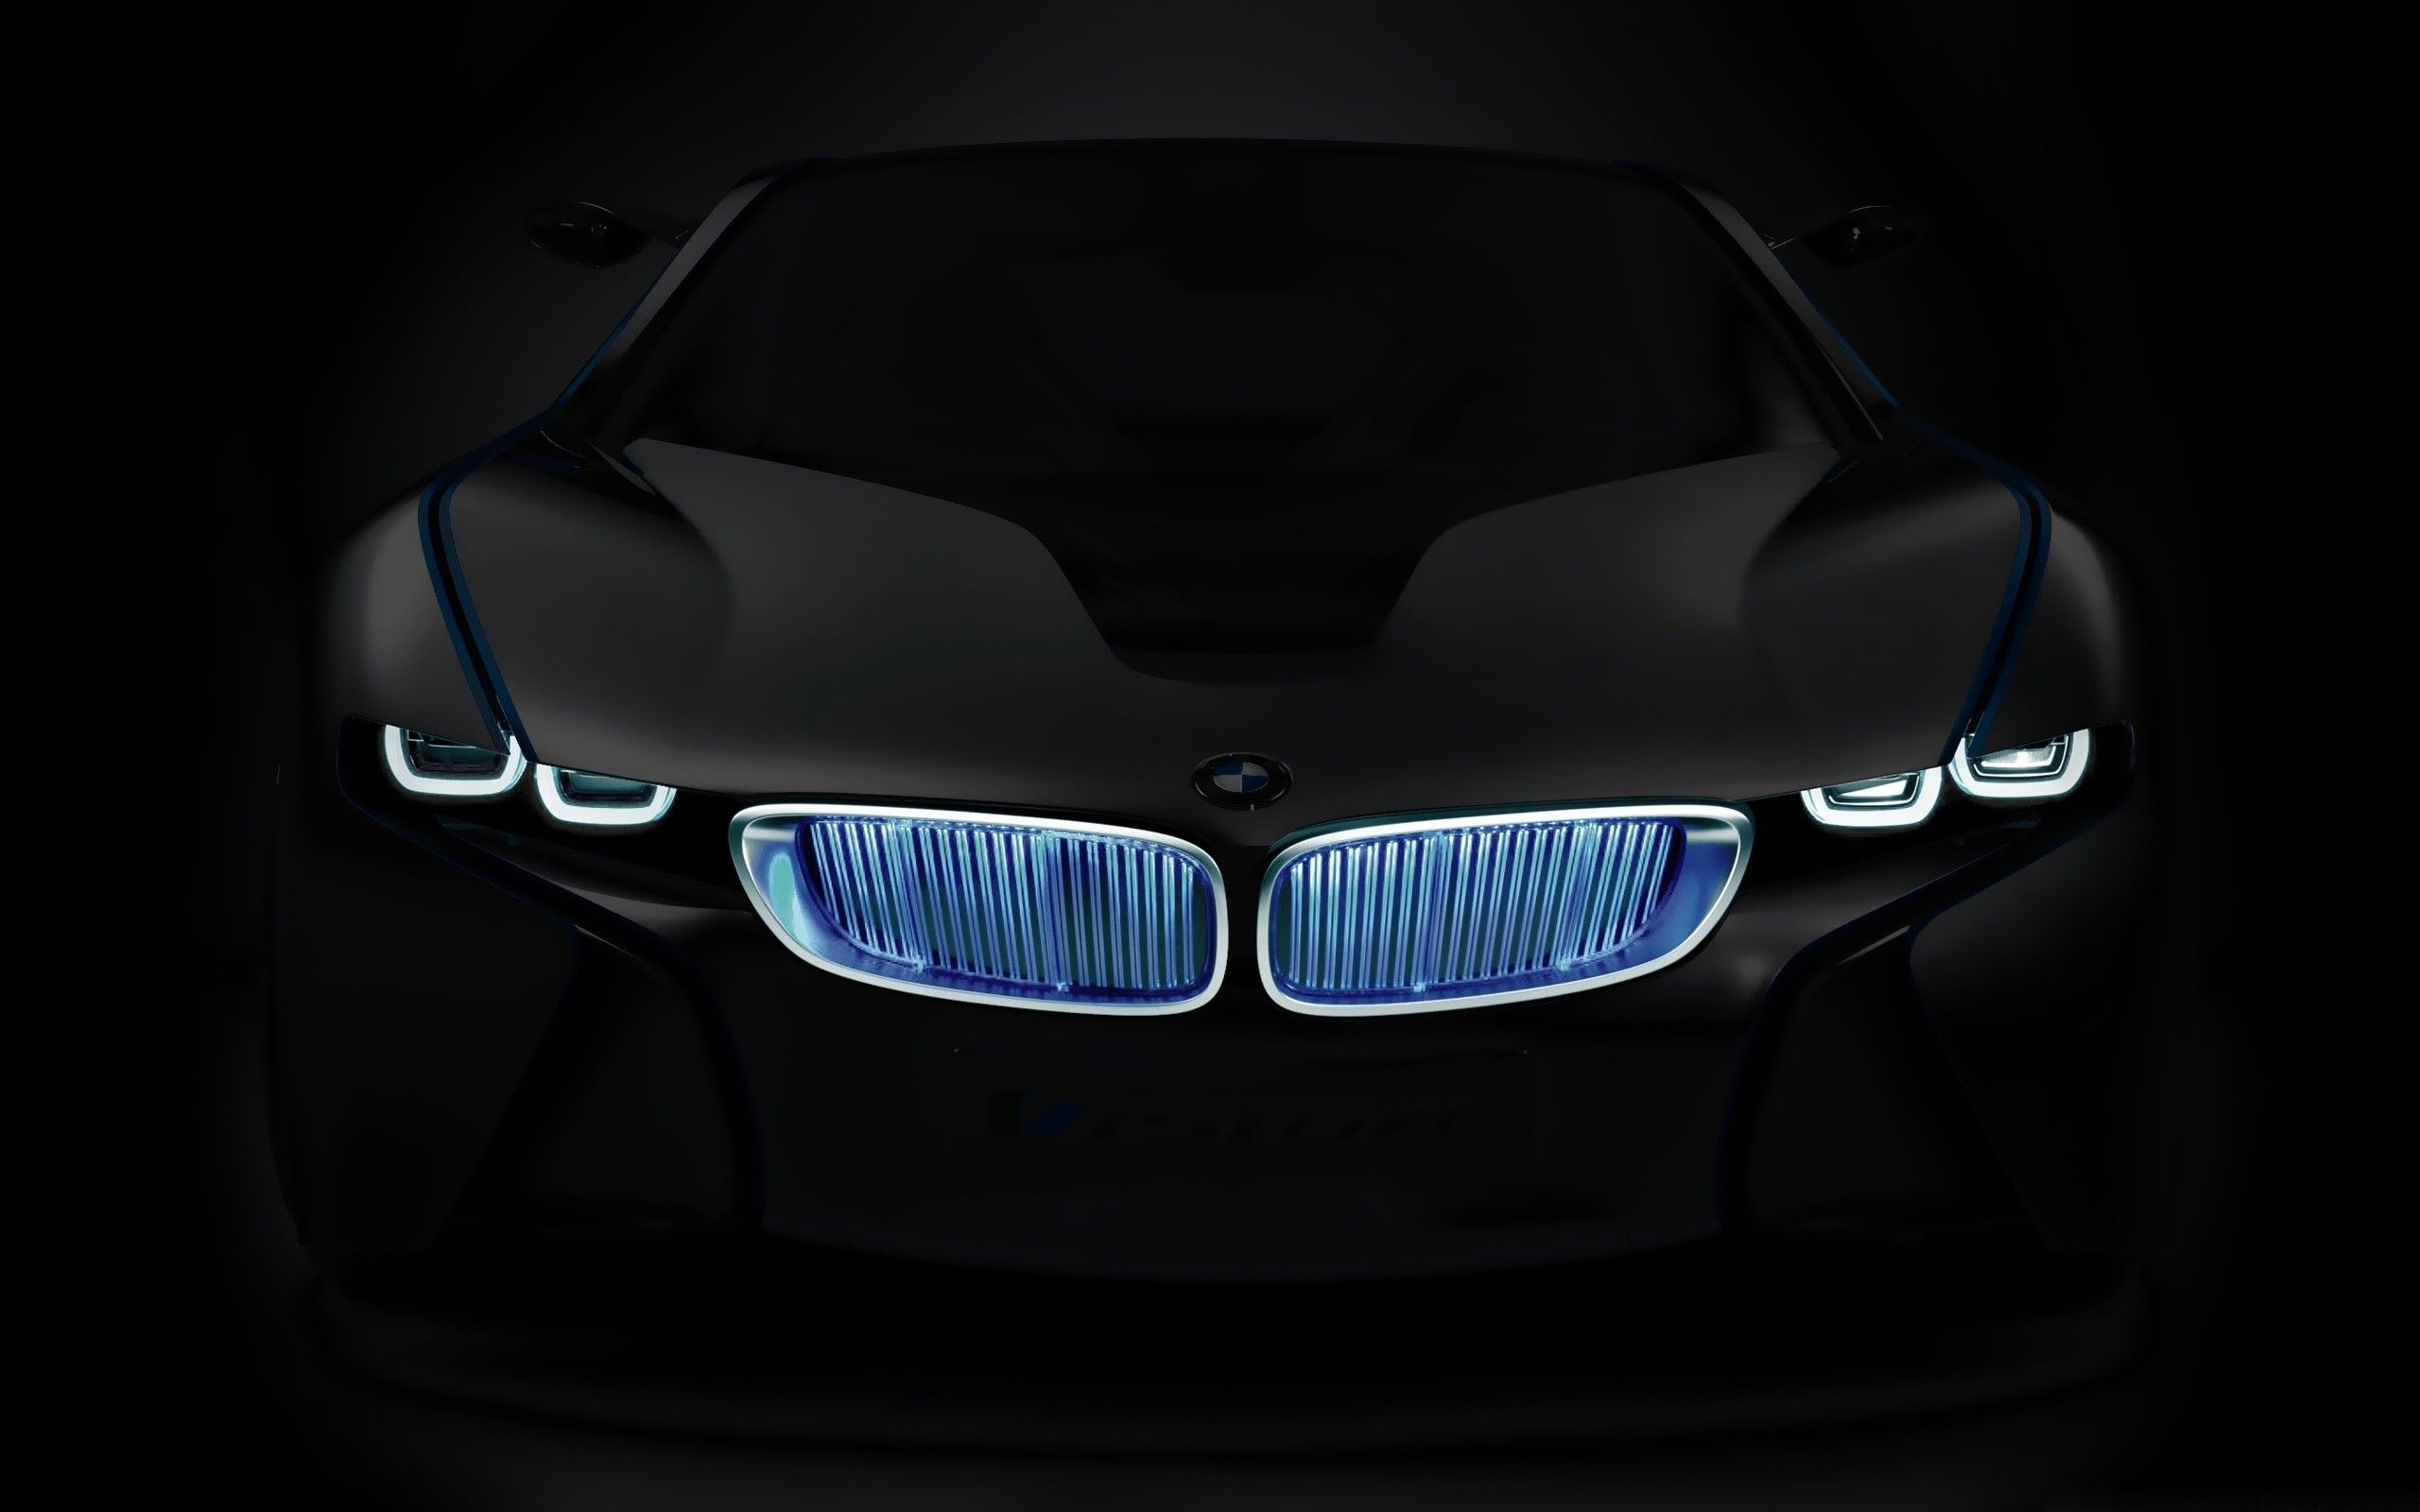 157 BMW M3 HD Wallpapers | Backgrounds - Wallpaper Abyss